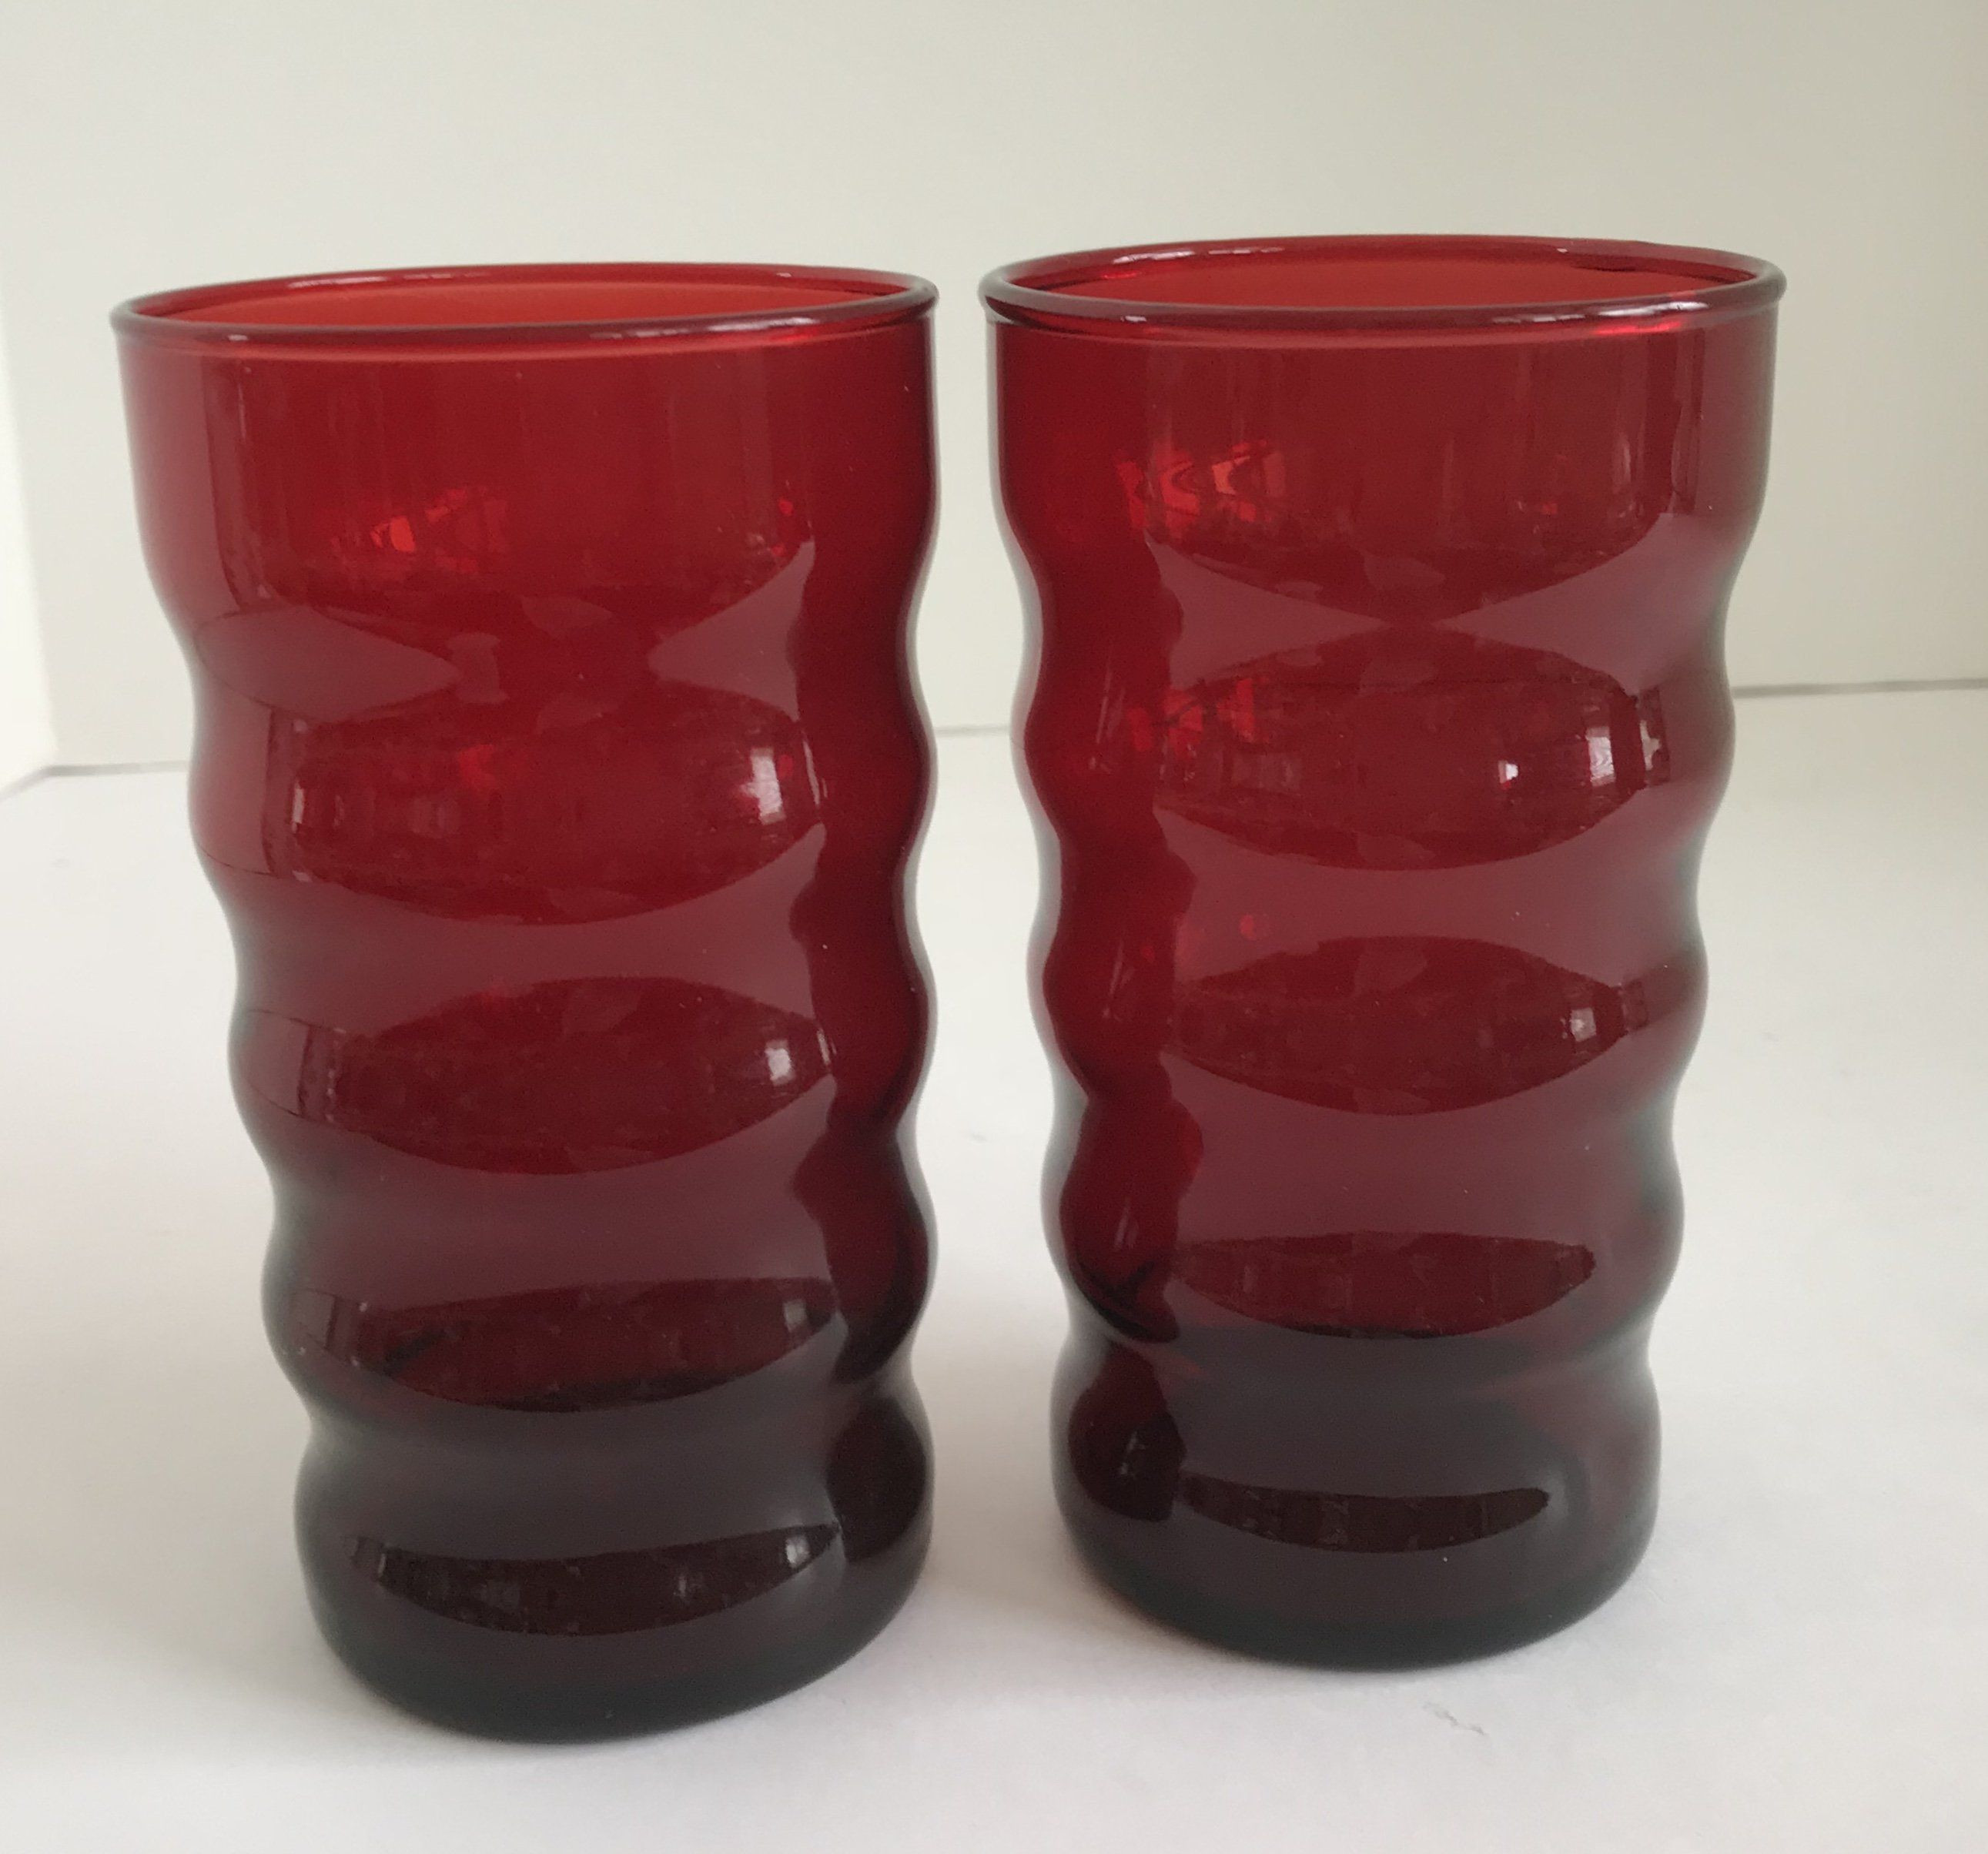 vintage red glass bud vase of vintage set of 2 mid century anchor hocking royal ruby red ribbed throughout vintage set of 2 mid century anchor hocking royal ruby red ribbed drinking glasses